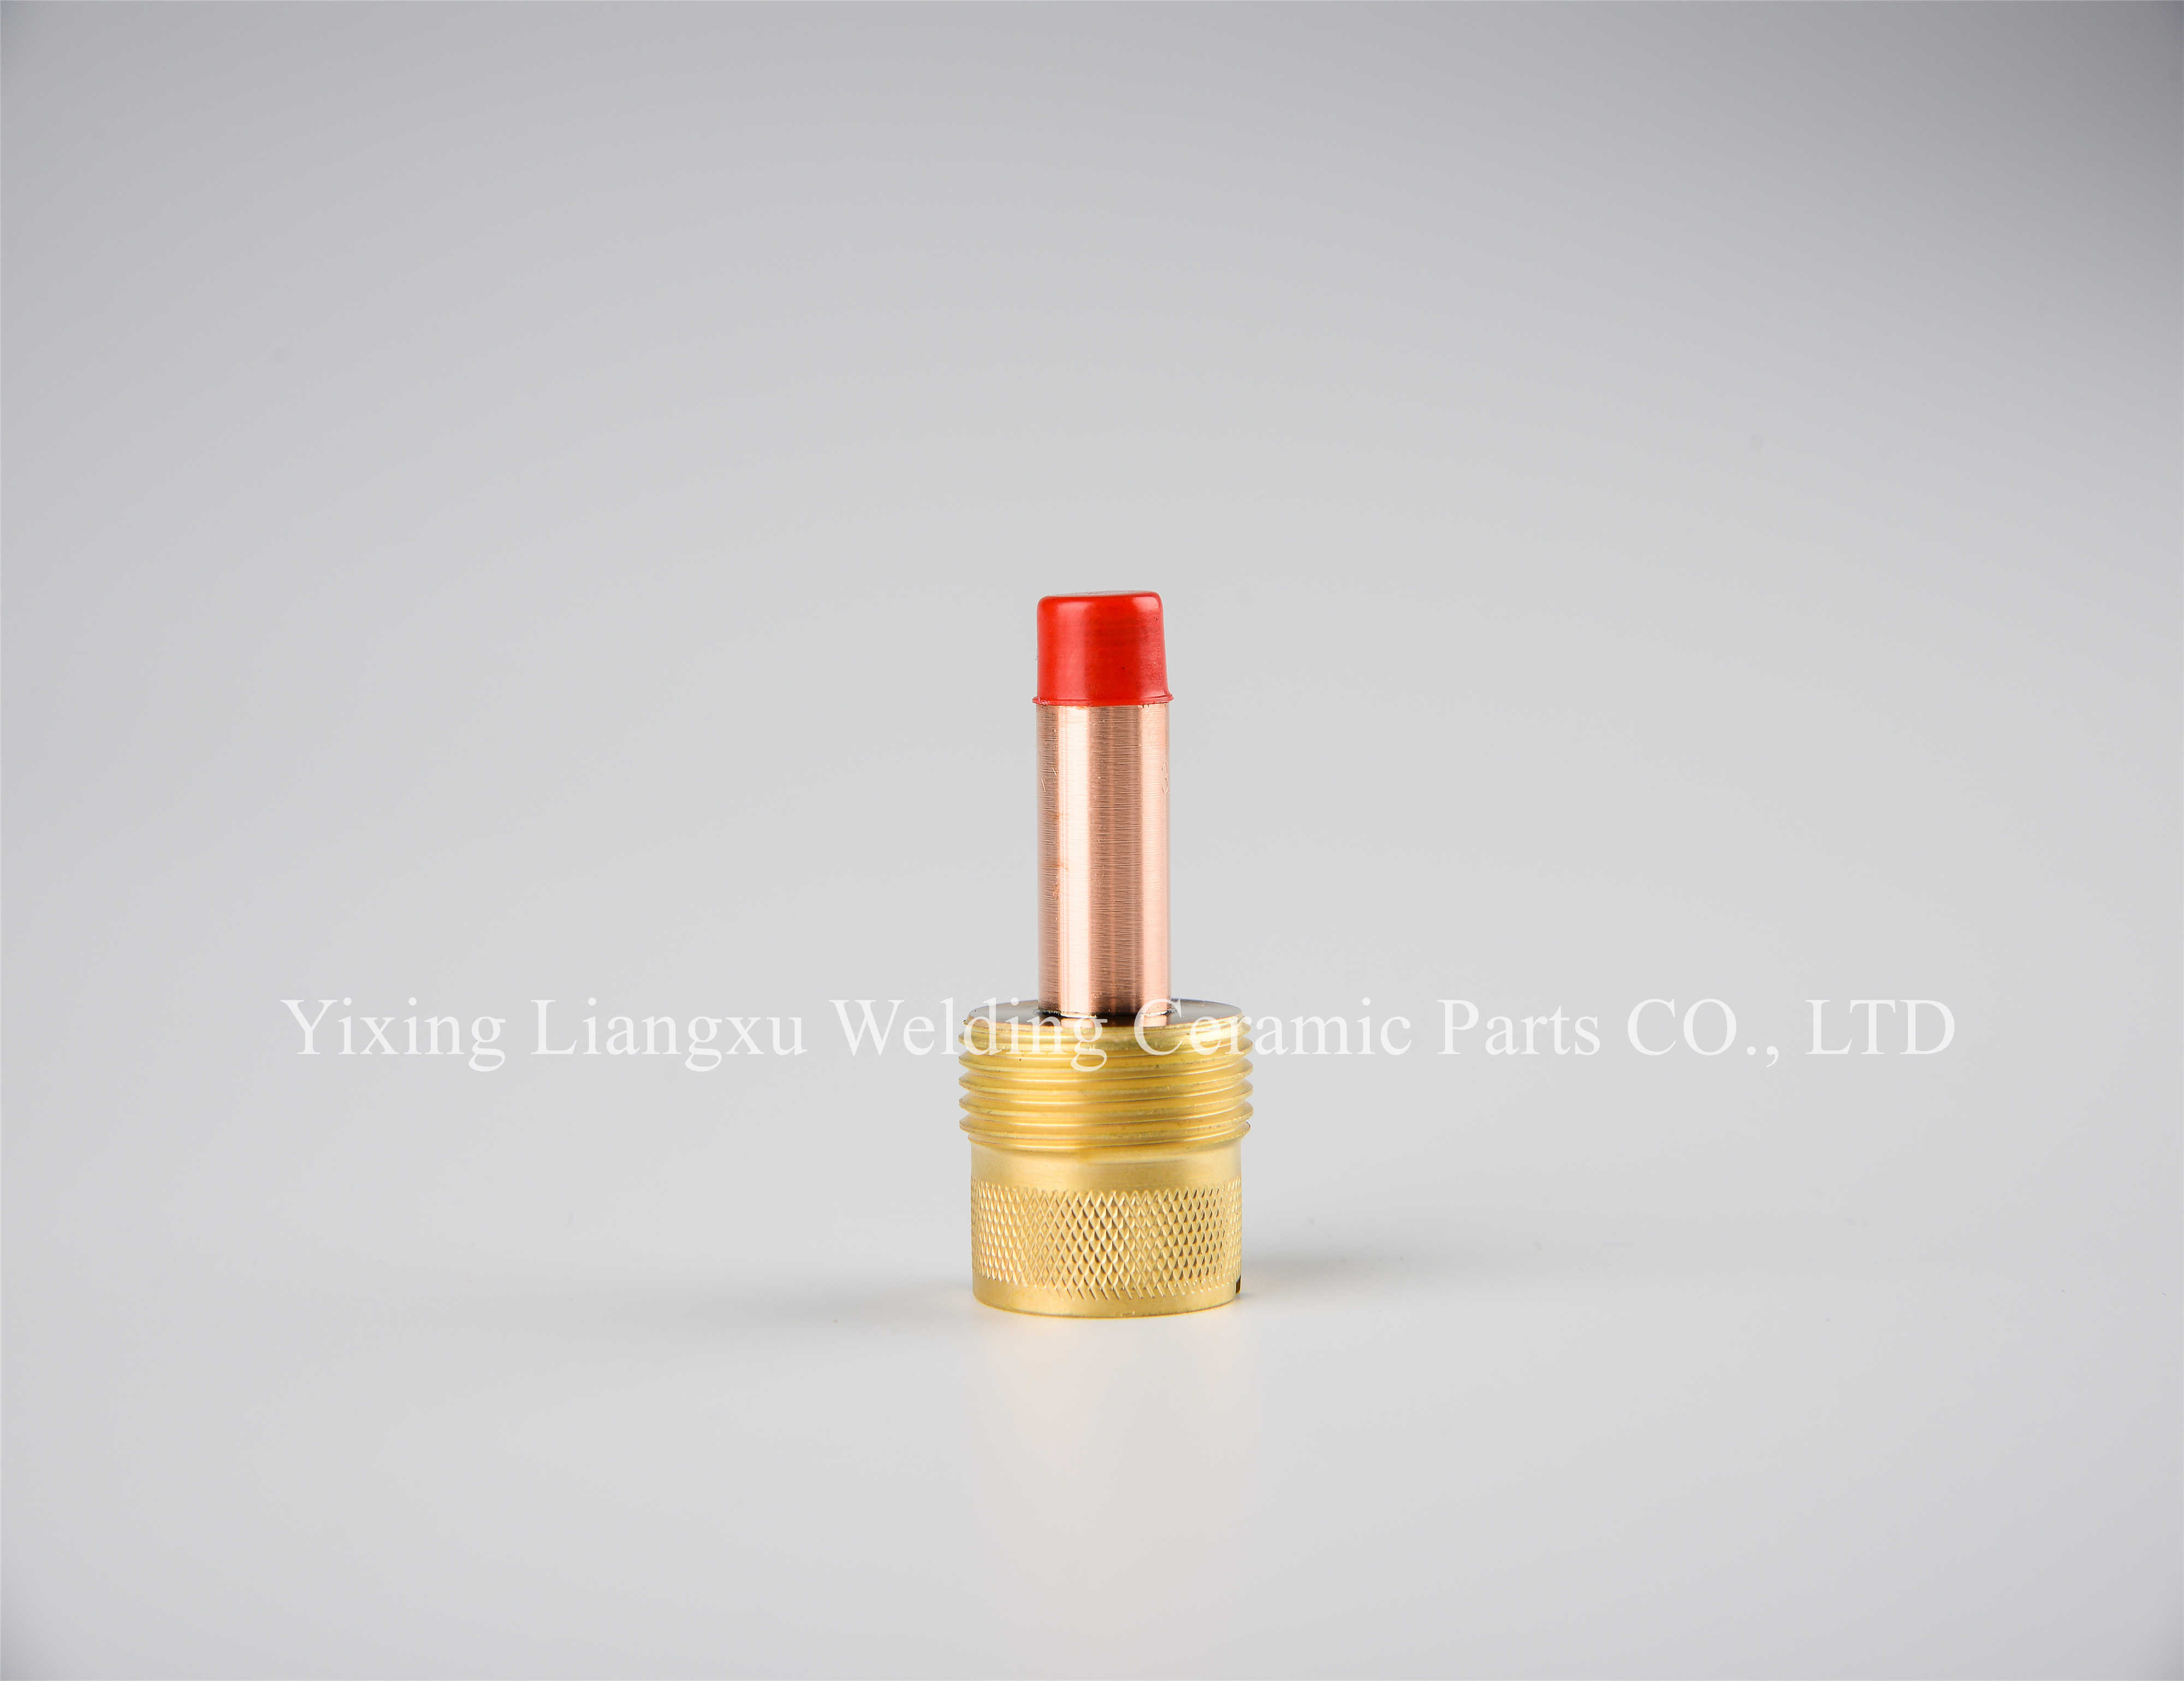 TIG welding torch 995795 gas lens collet body